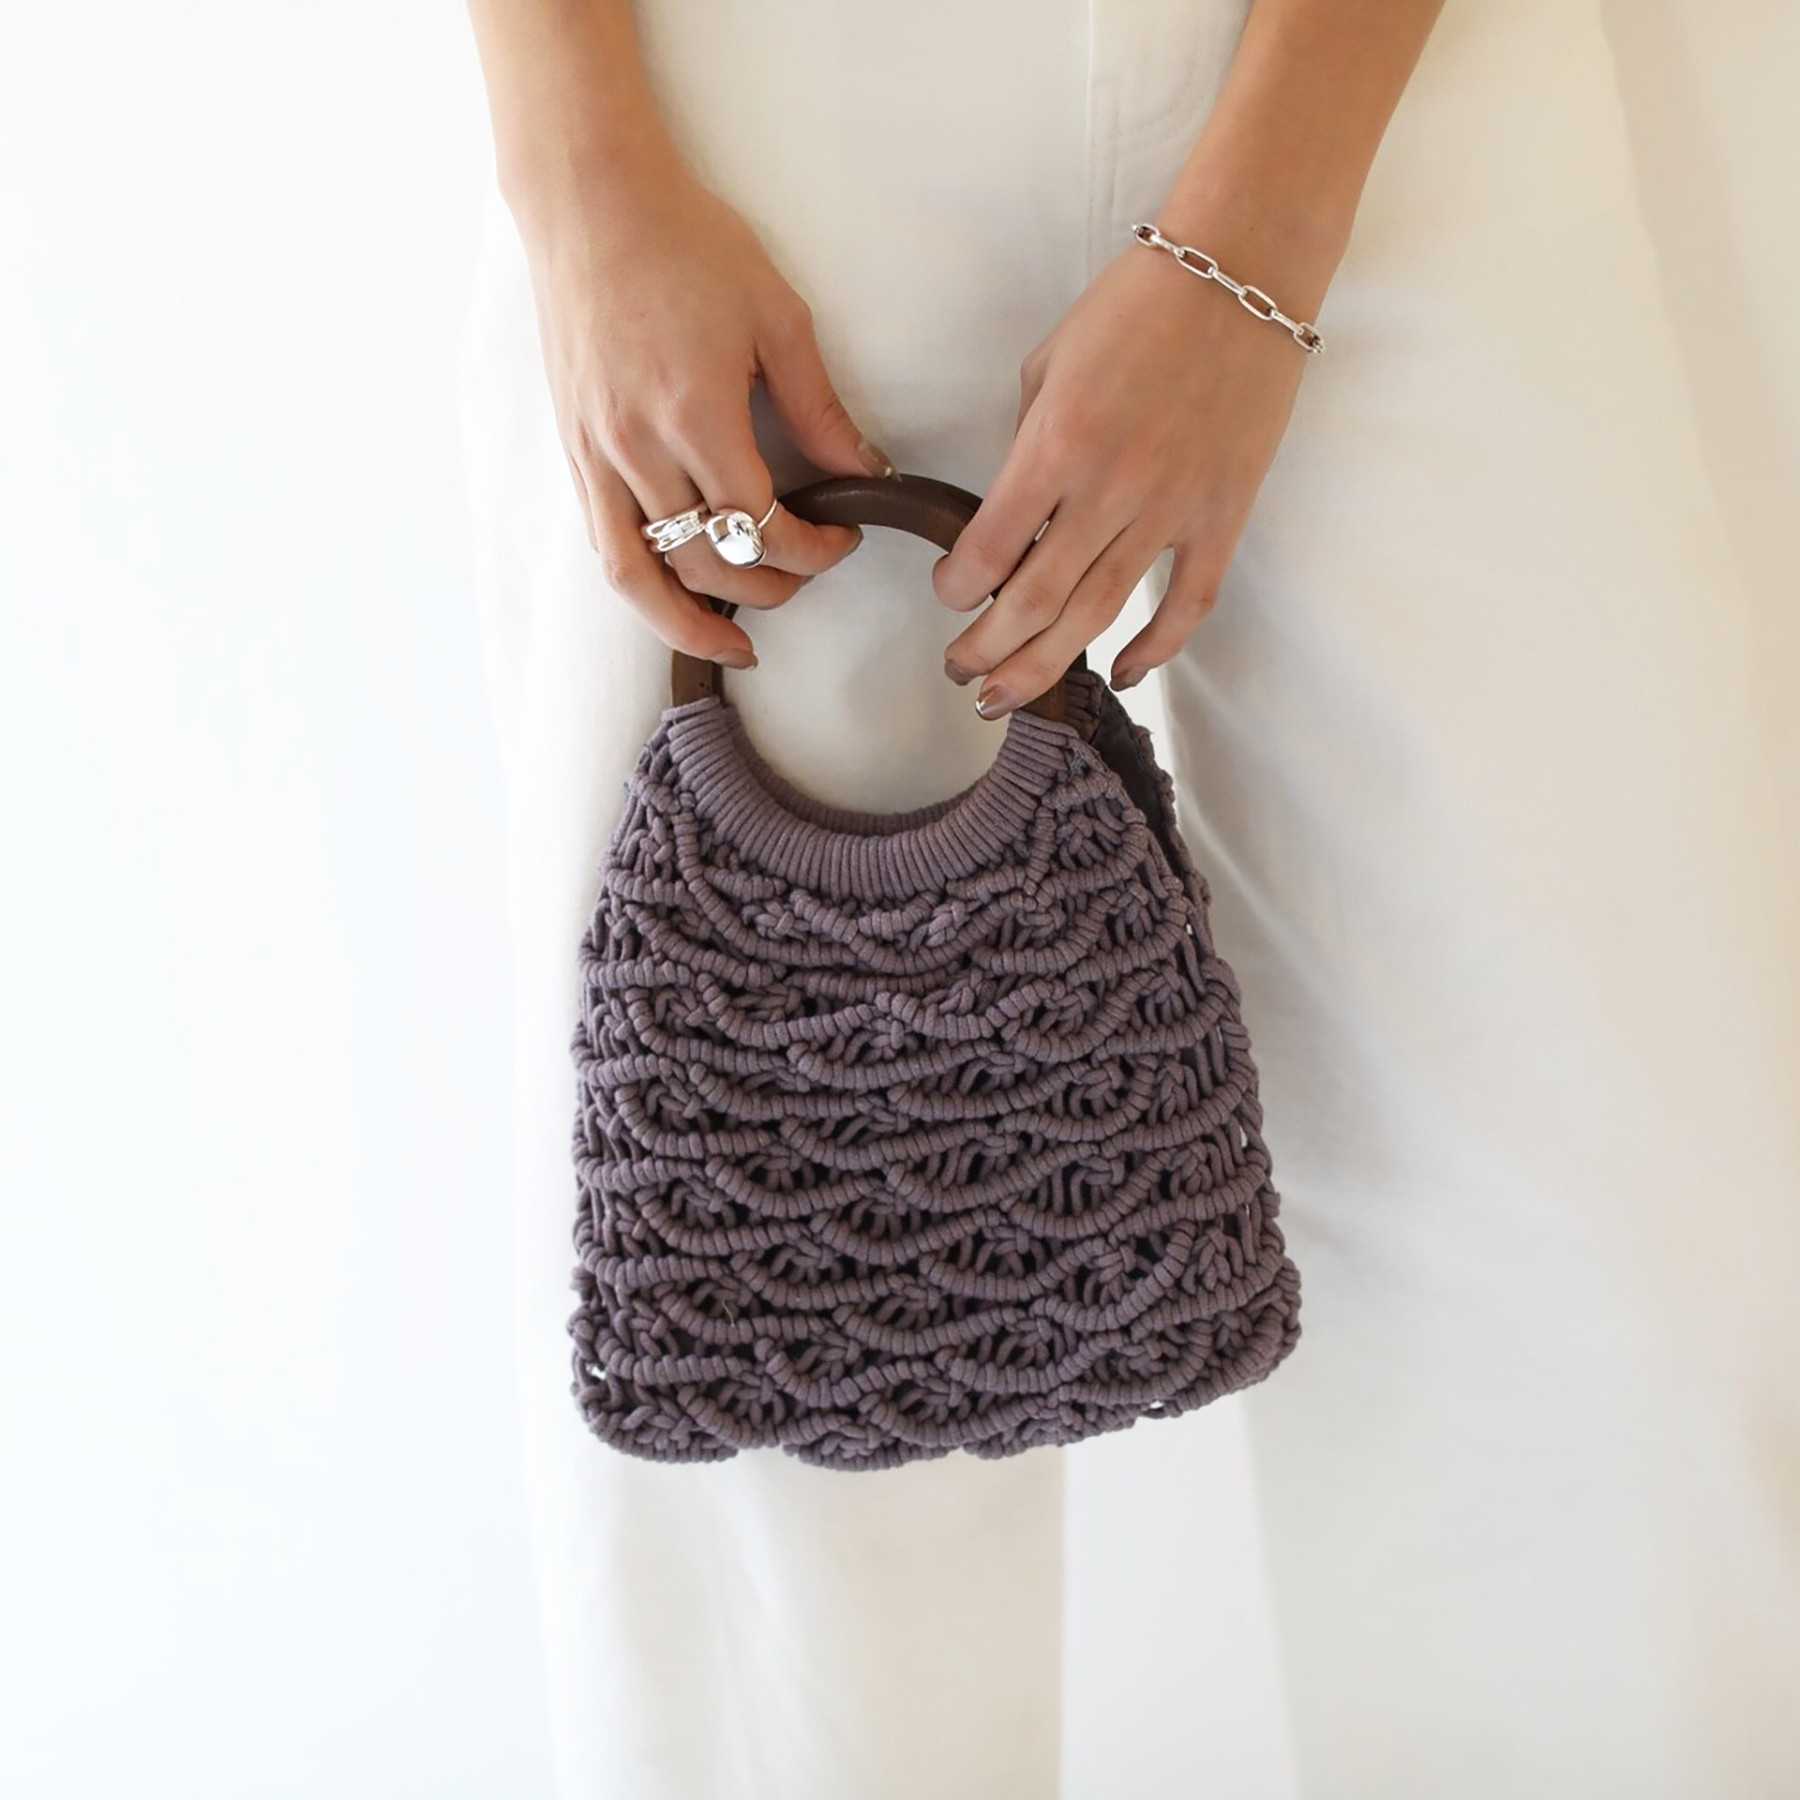 Circlehandle Macrame Bag